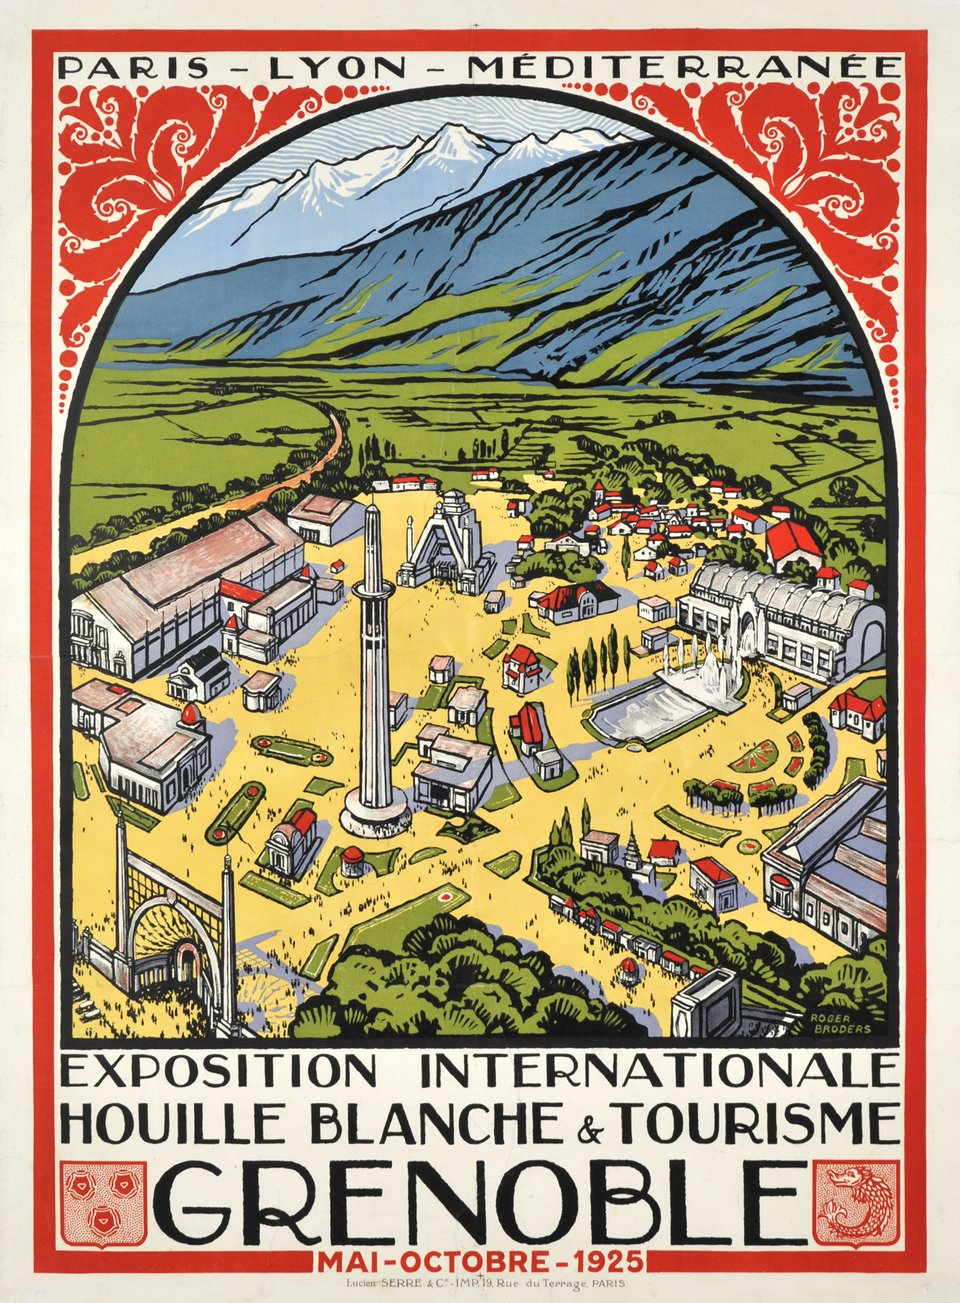 Exposition internationale, Houille Blanche & tourime, Grenoble 1925 – Vintage poster – Roger BRODERS – 1925